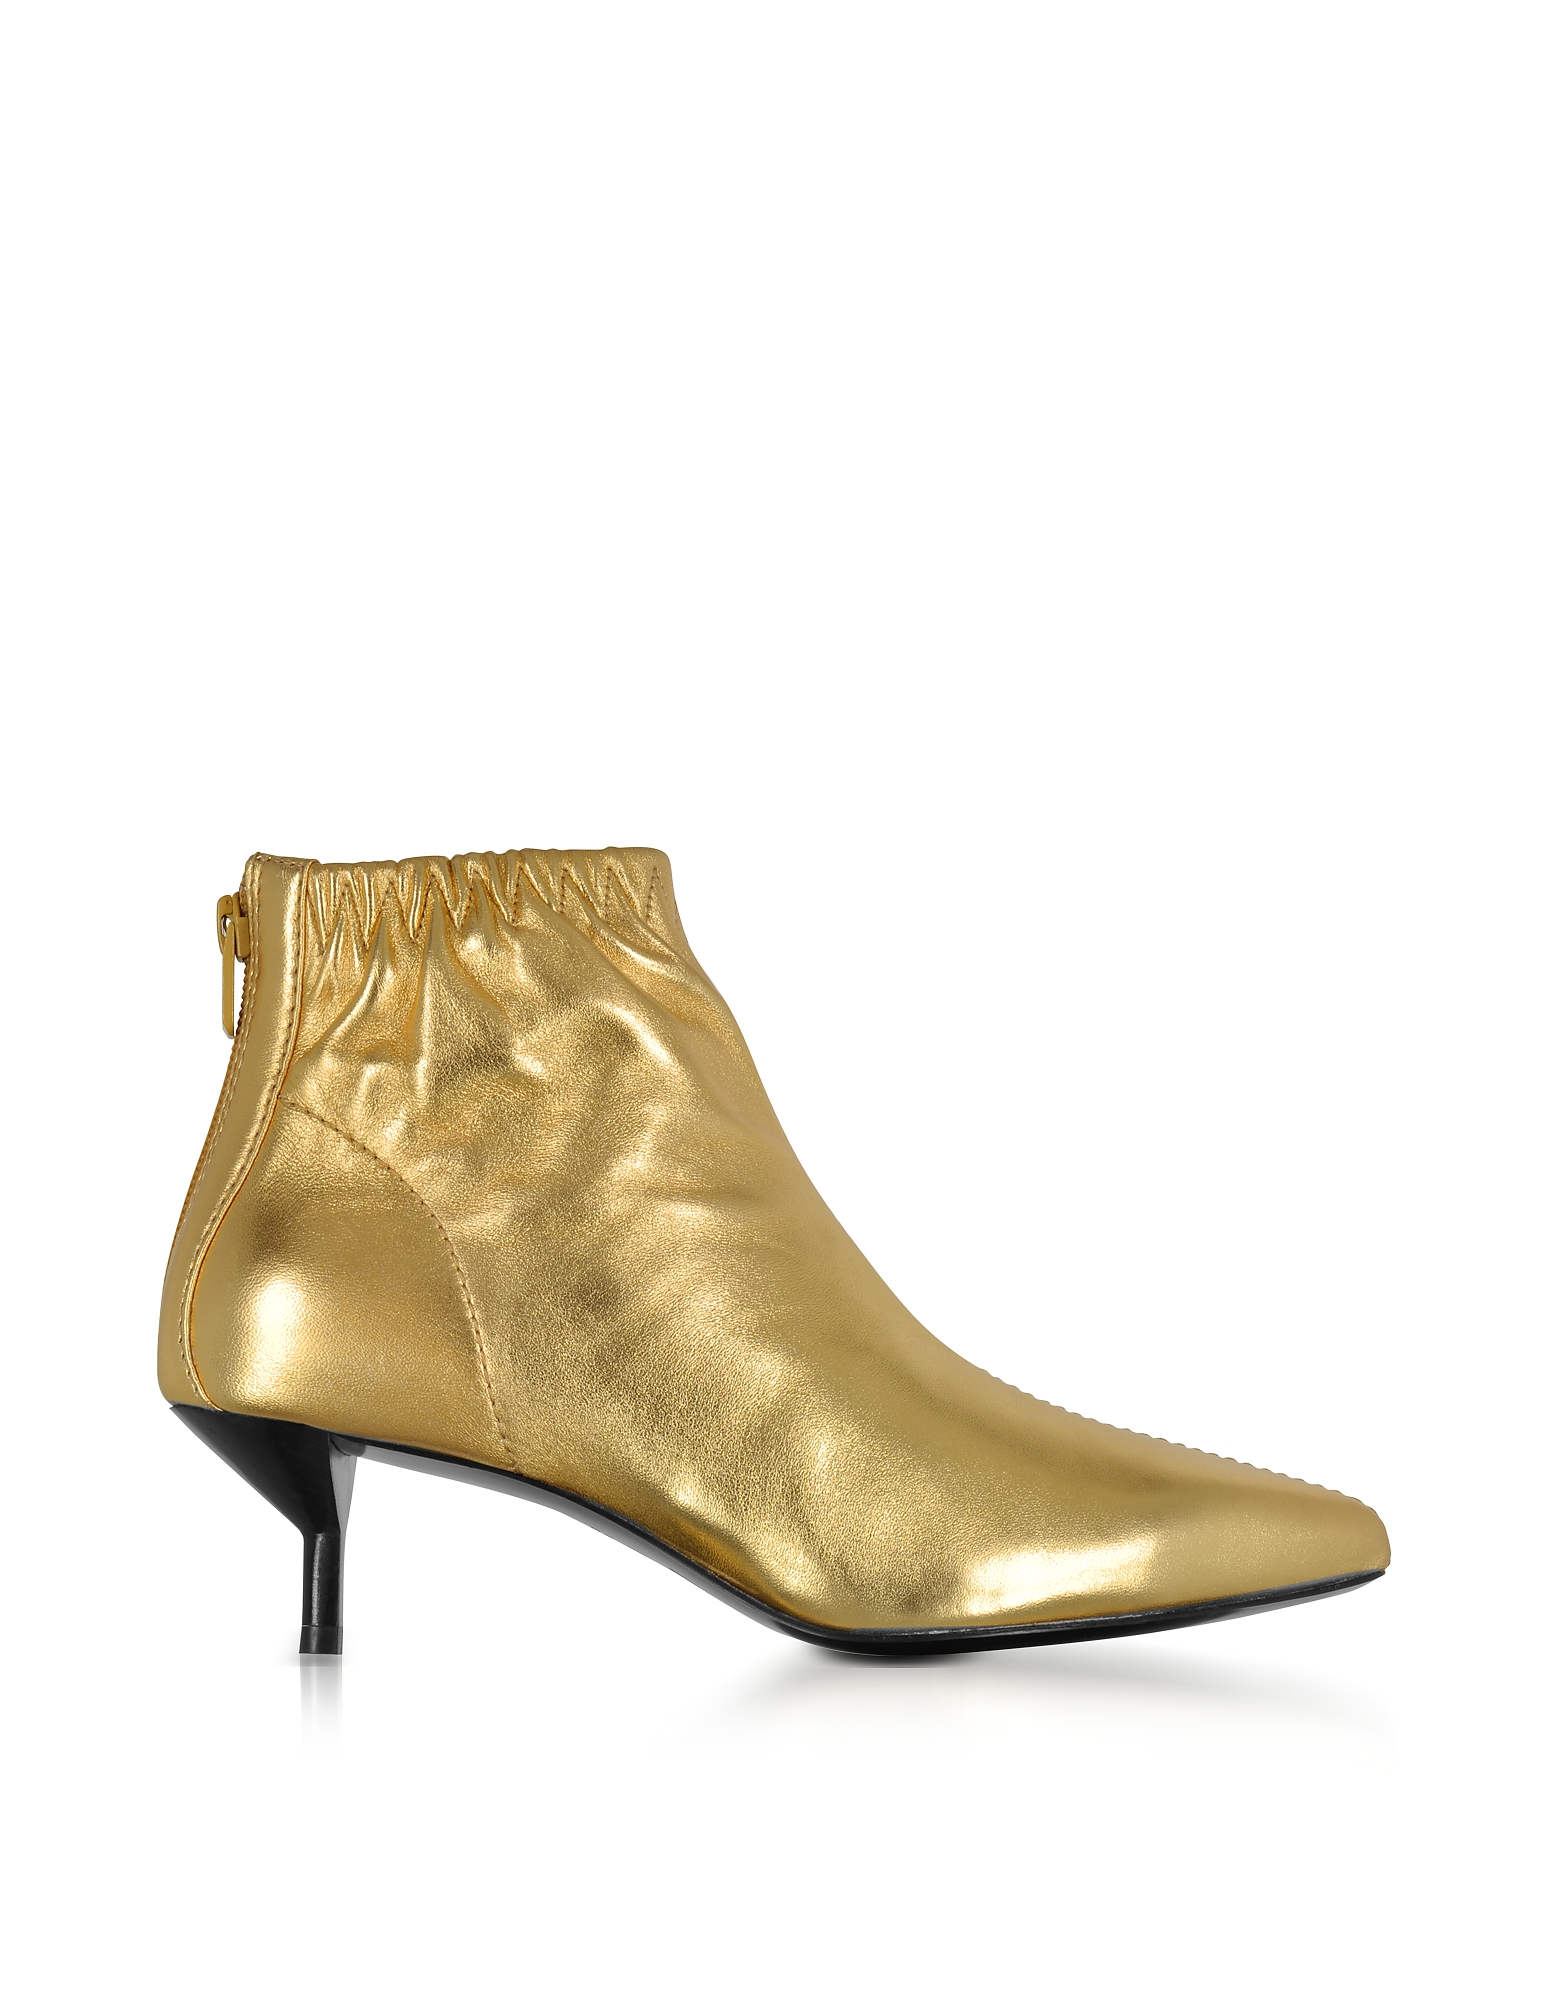 3.1 Phillip Lim Shoes, Blitz Gold Metallic Leather Kitten Heel Booties